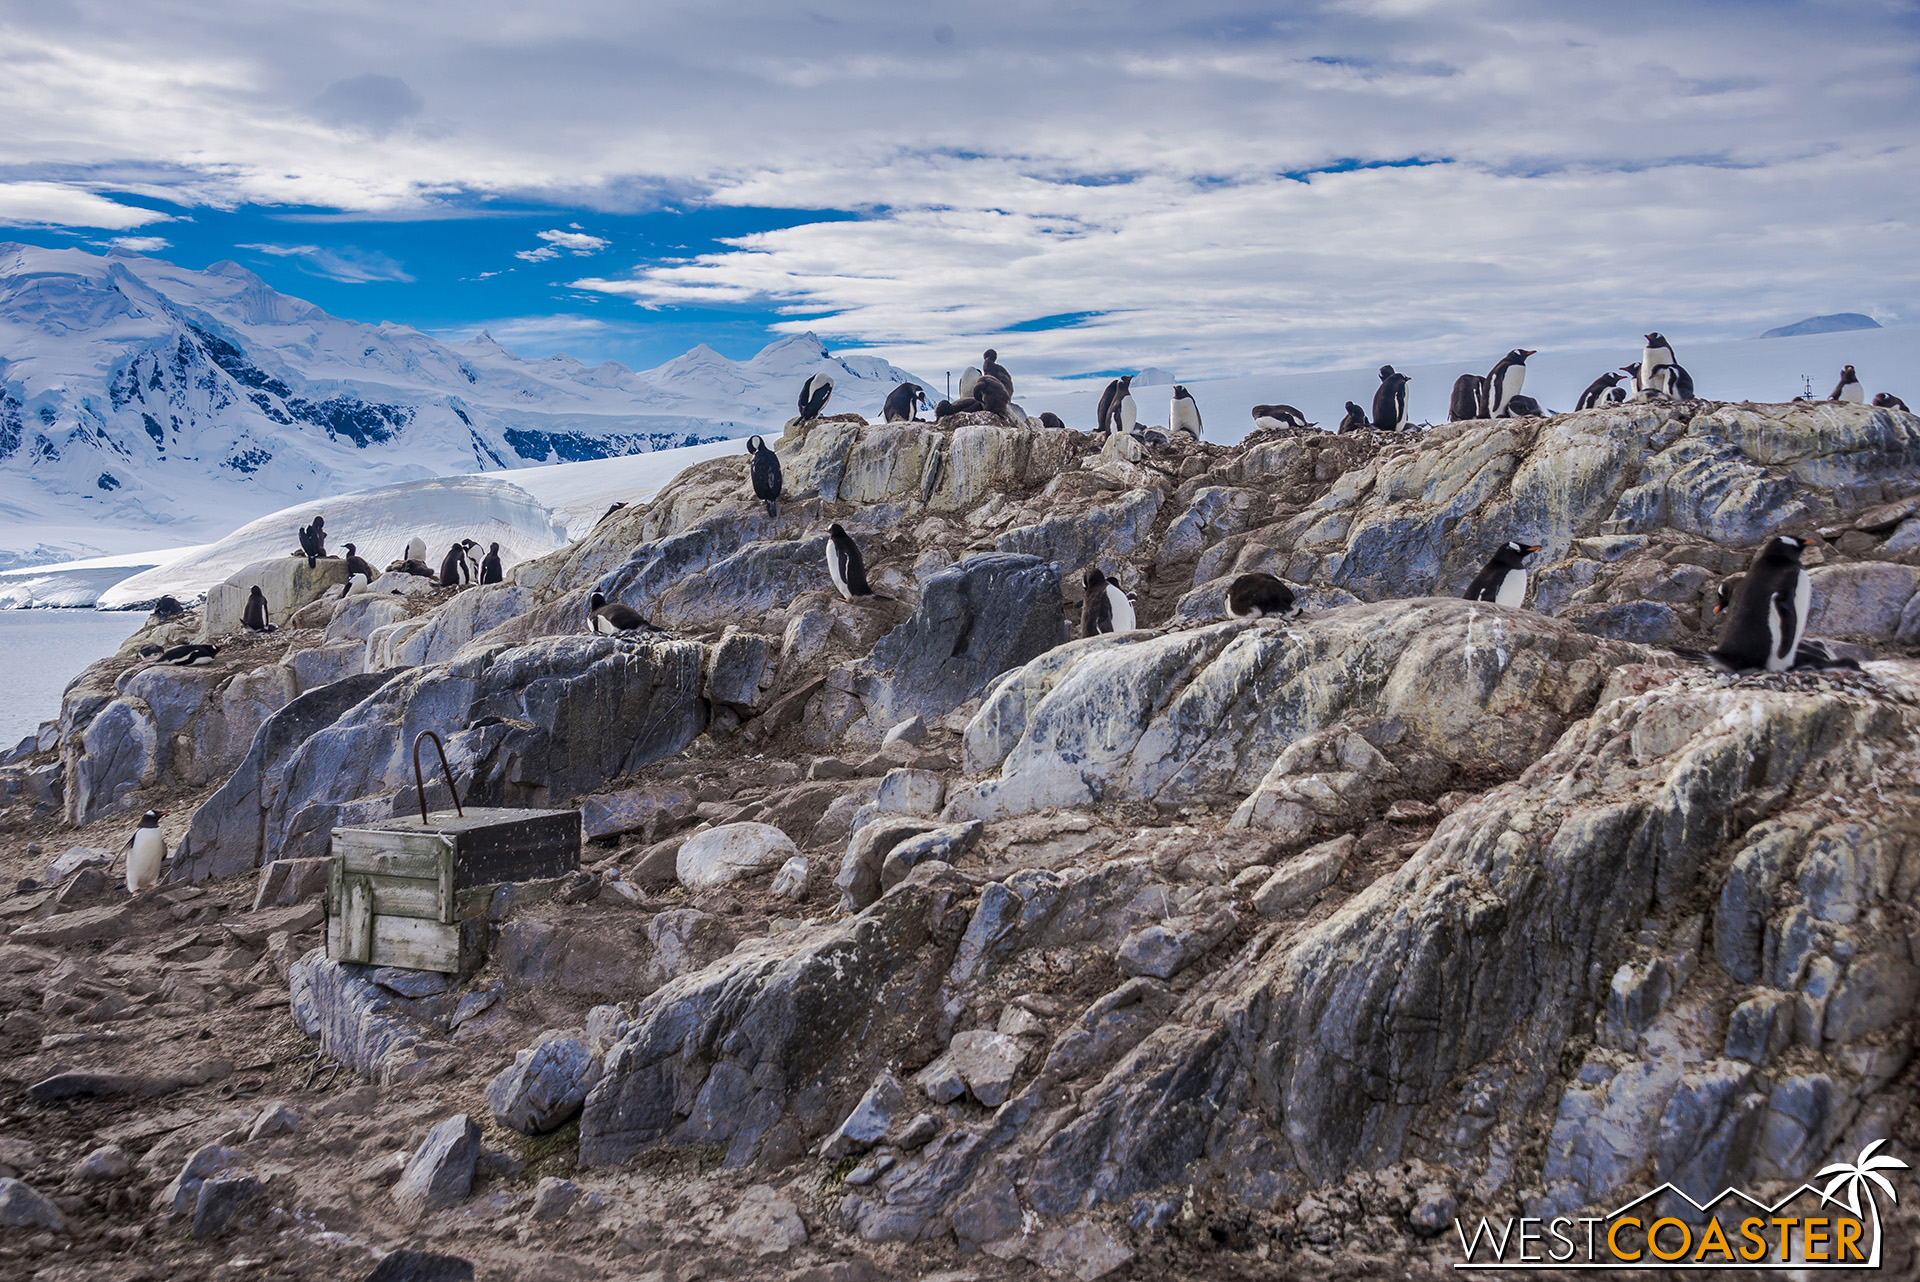 Penguins, penguins, scattered about everywhere!